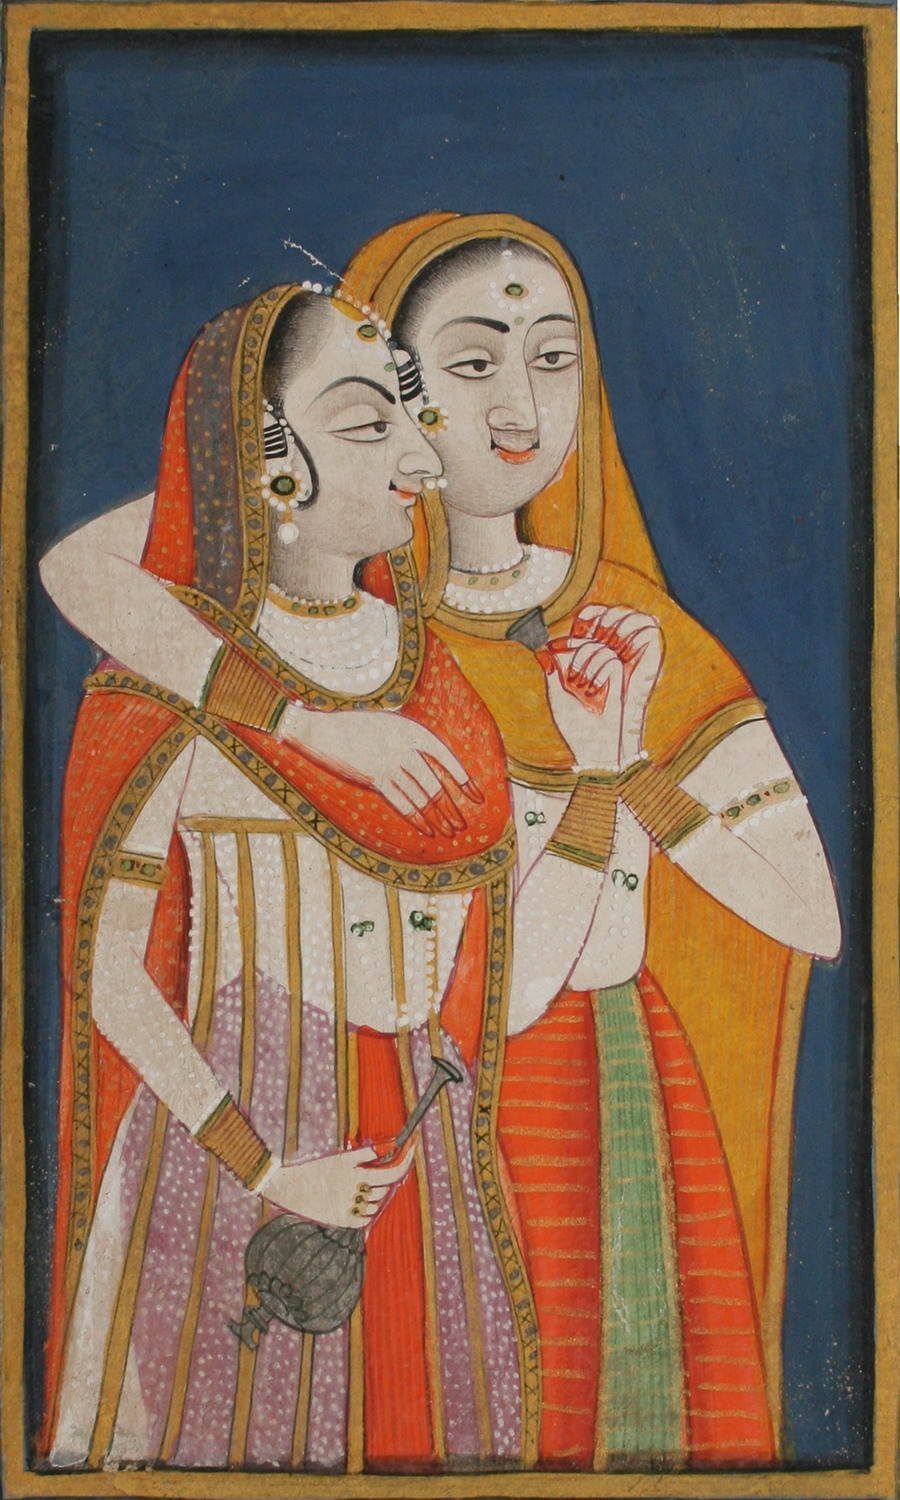 Drunken courtesans with wine flask and cup - Rajput Painting, Mewar, c1820-30